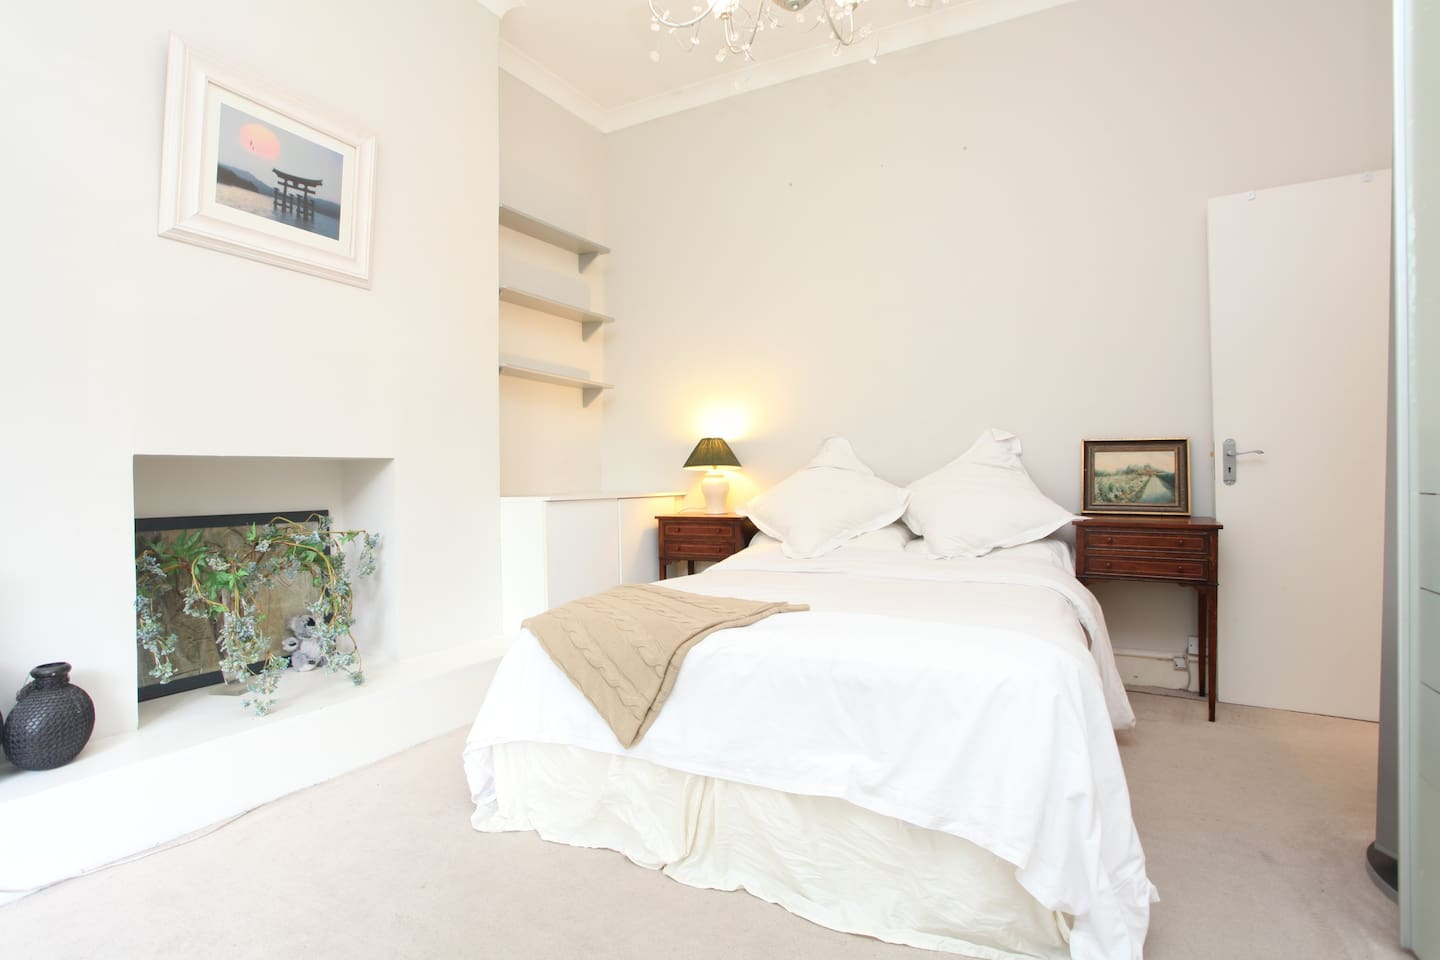 Neutral colours in a light and airy bedroom with a direct exit to the outdoor patio